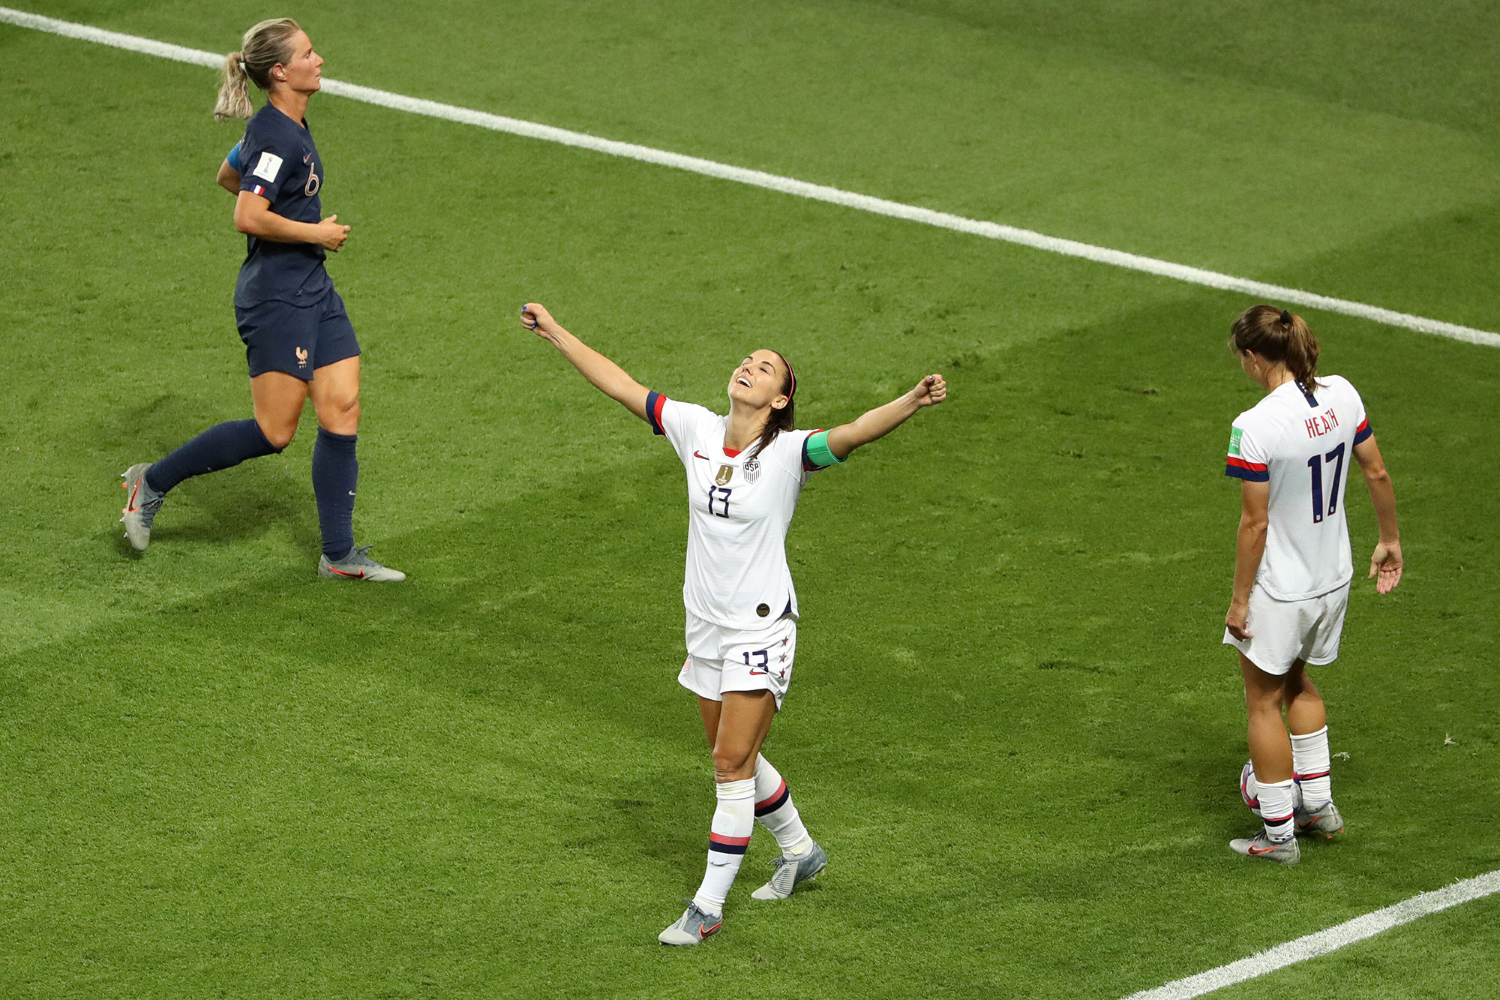 Alex Morgan of the USA celebrates following victory in the 2019 FIFA Women's World Cup France Quarterfinal match between France and USA at Parc des Princes on June 28, 2019 in Paris, France. (Robert Cianflone/Getty Images/TNS)